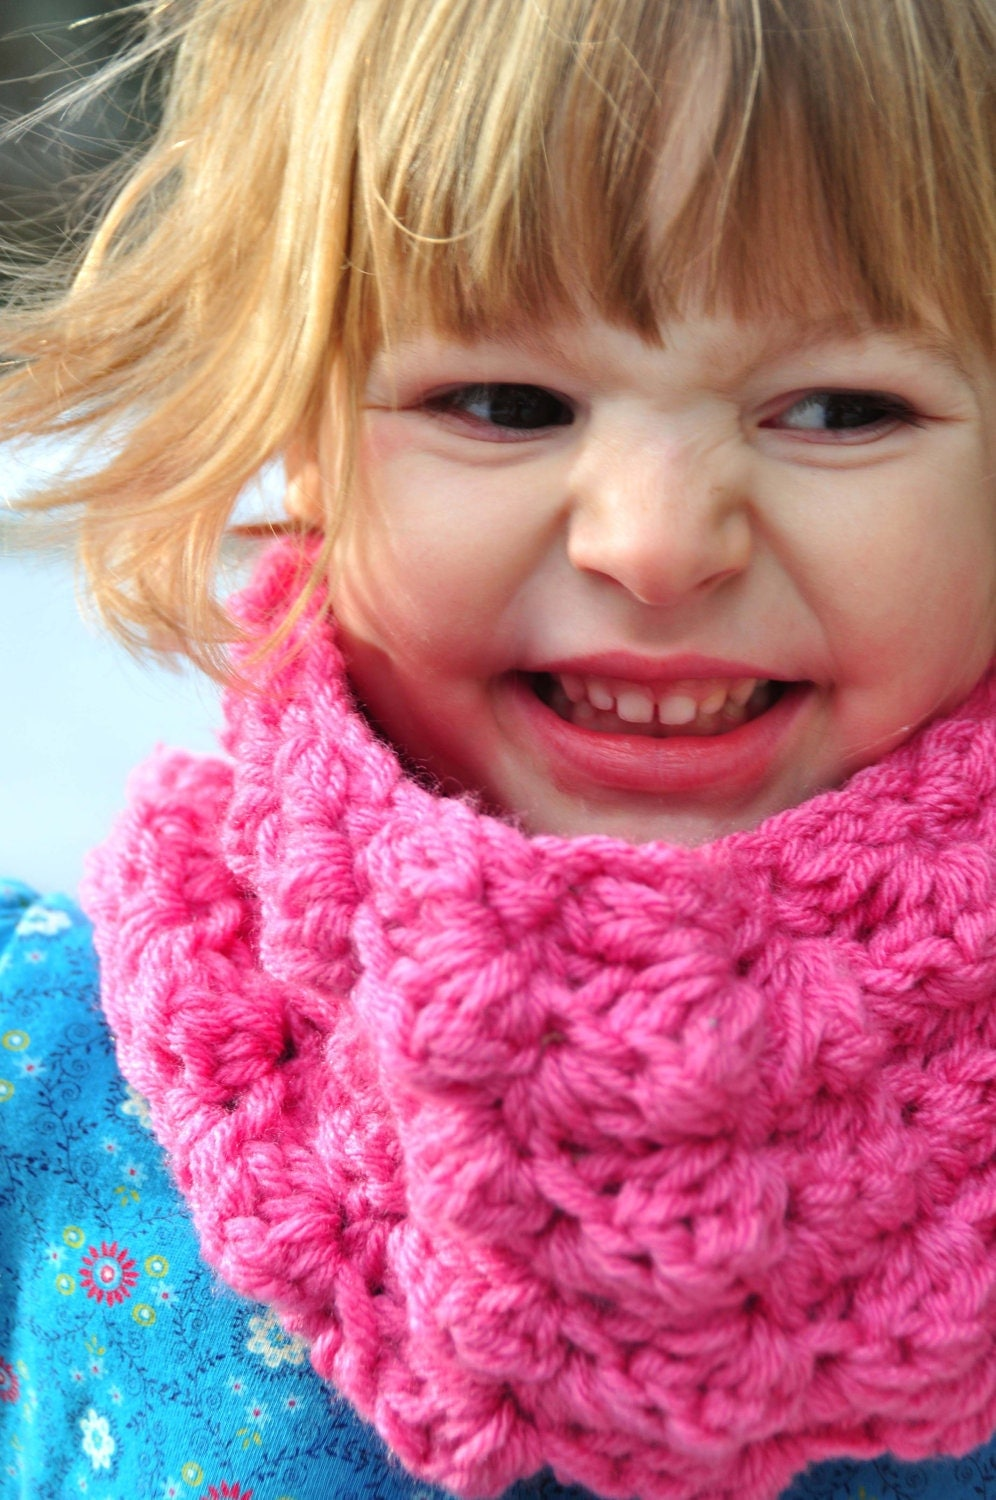 Childrens Scarf Pattern Crochet Sedge Stitch by AestheticNest Crochet Children's Scarf Patterns Free